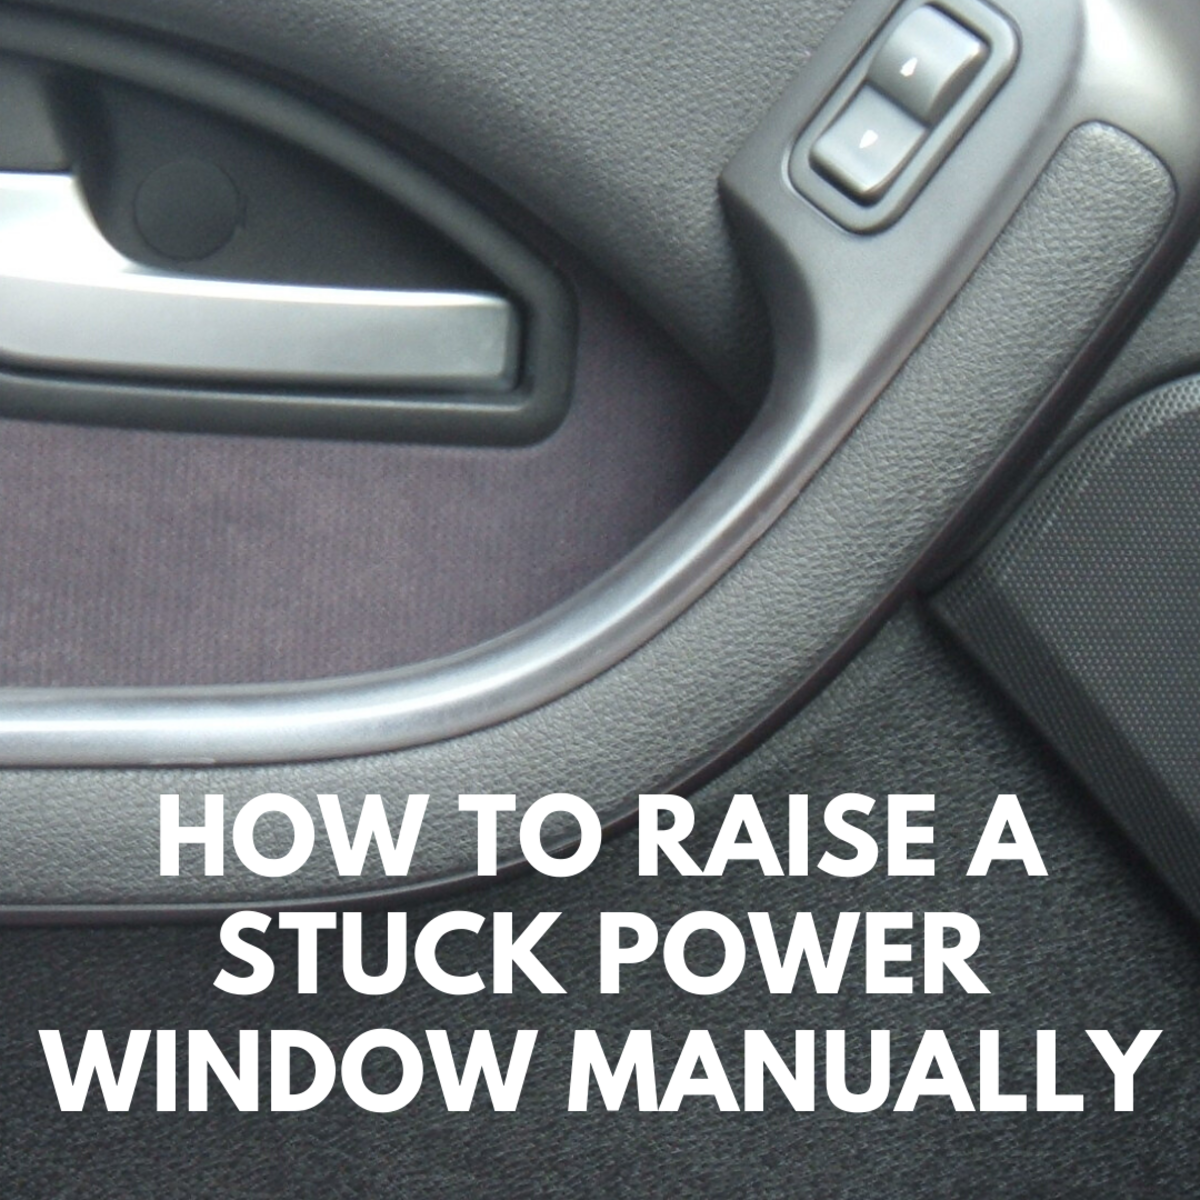 How to Raise a Stuck Power Window Manually